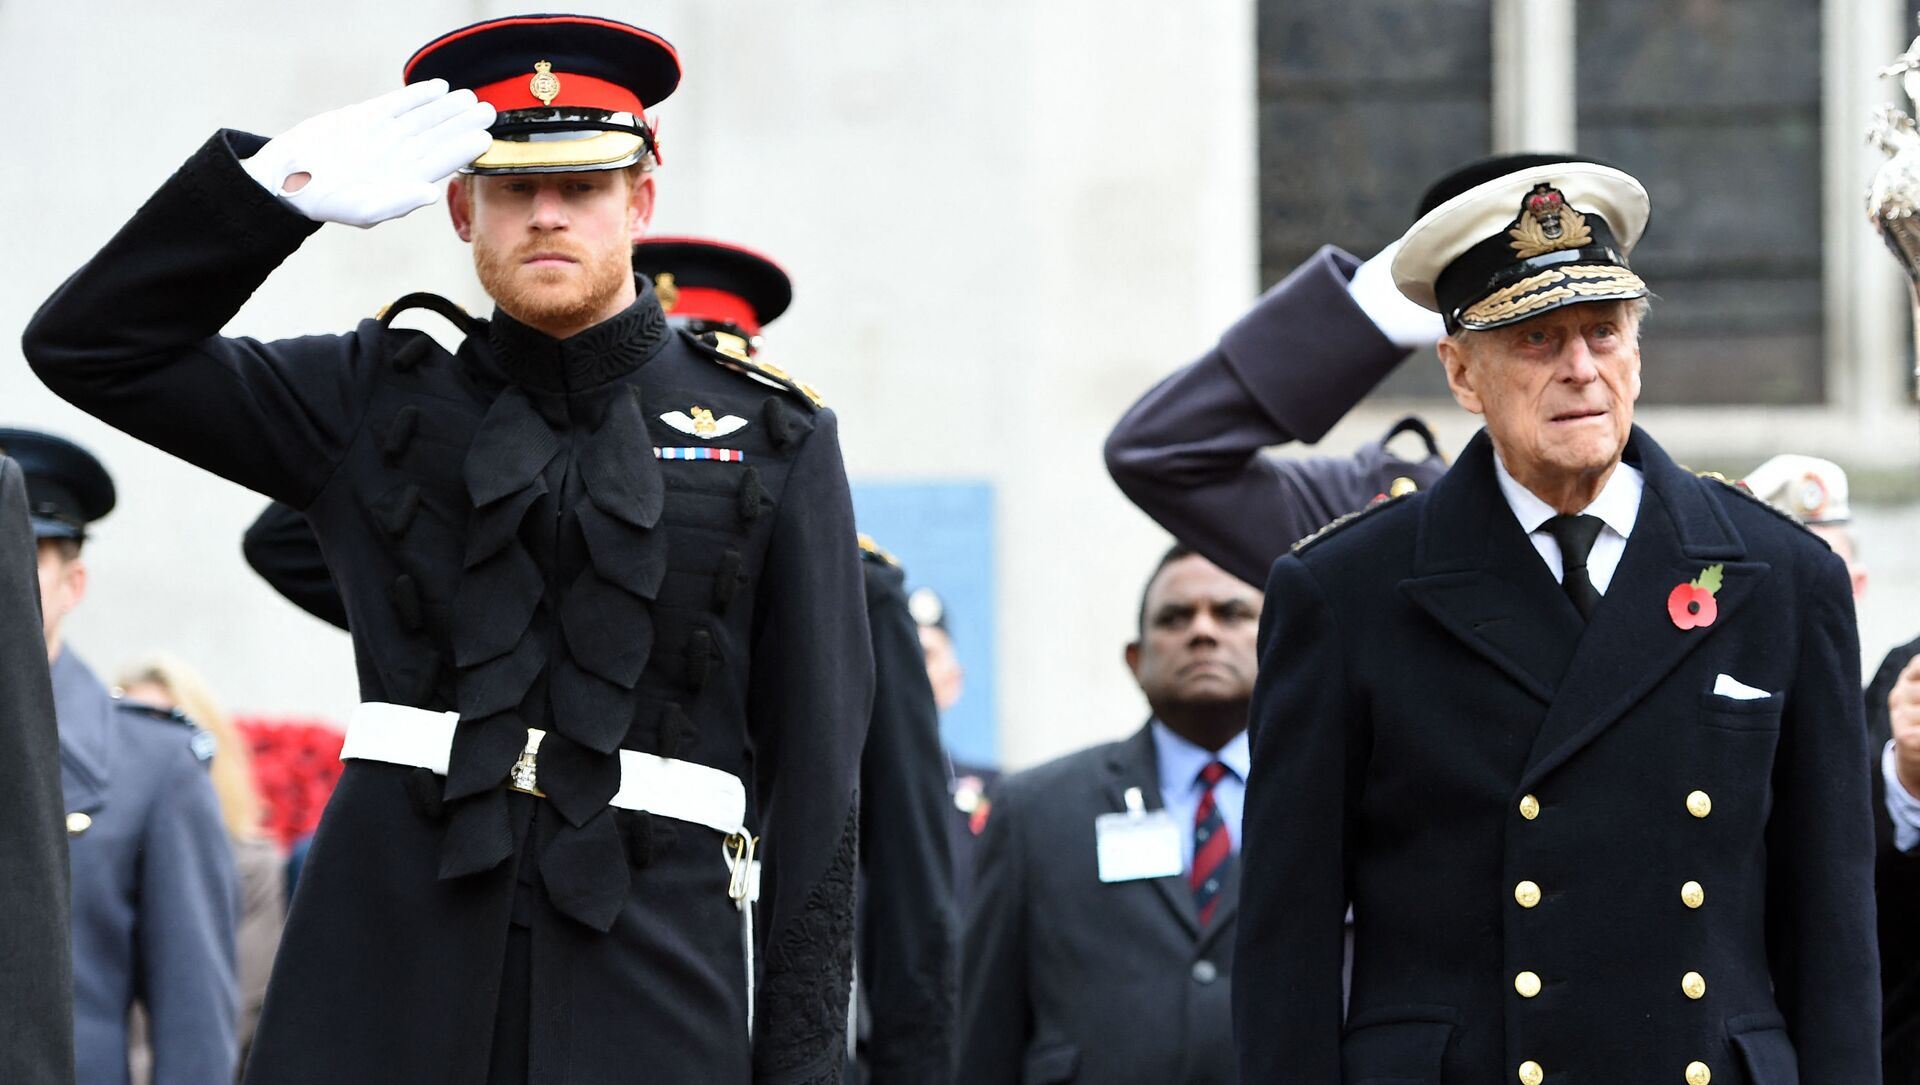 Britain's Prince Harry (L) salutes as he stands alongside his grandfather Britain's Prince Philip, Duke of Edinburgh, during their visit to the Field of Remembrance at Westminster Abbey in central London on November 10, 2016. - Sputnik International, 1920, 18.02.2021